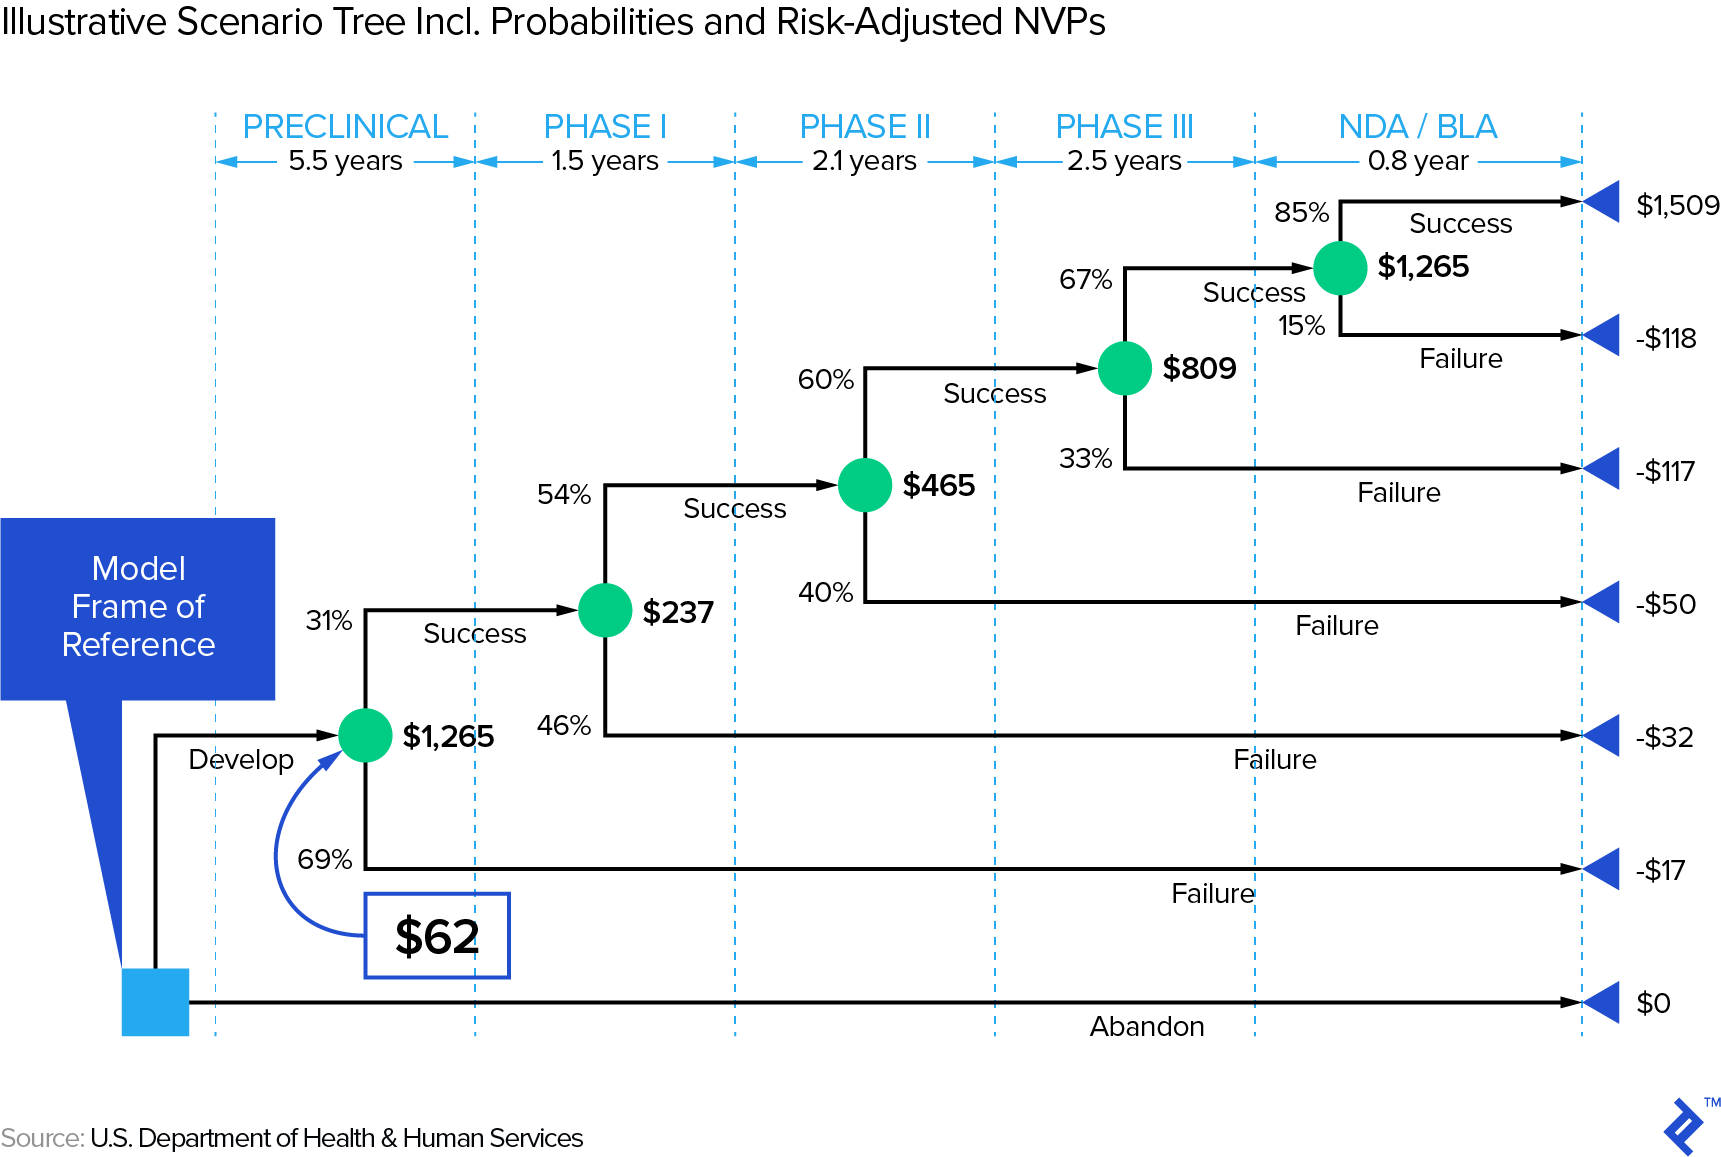 Biotech Valuation Best Practices | Toptal